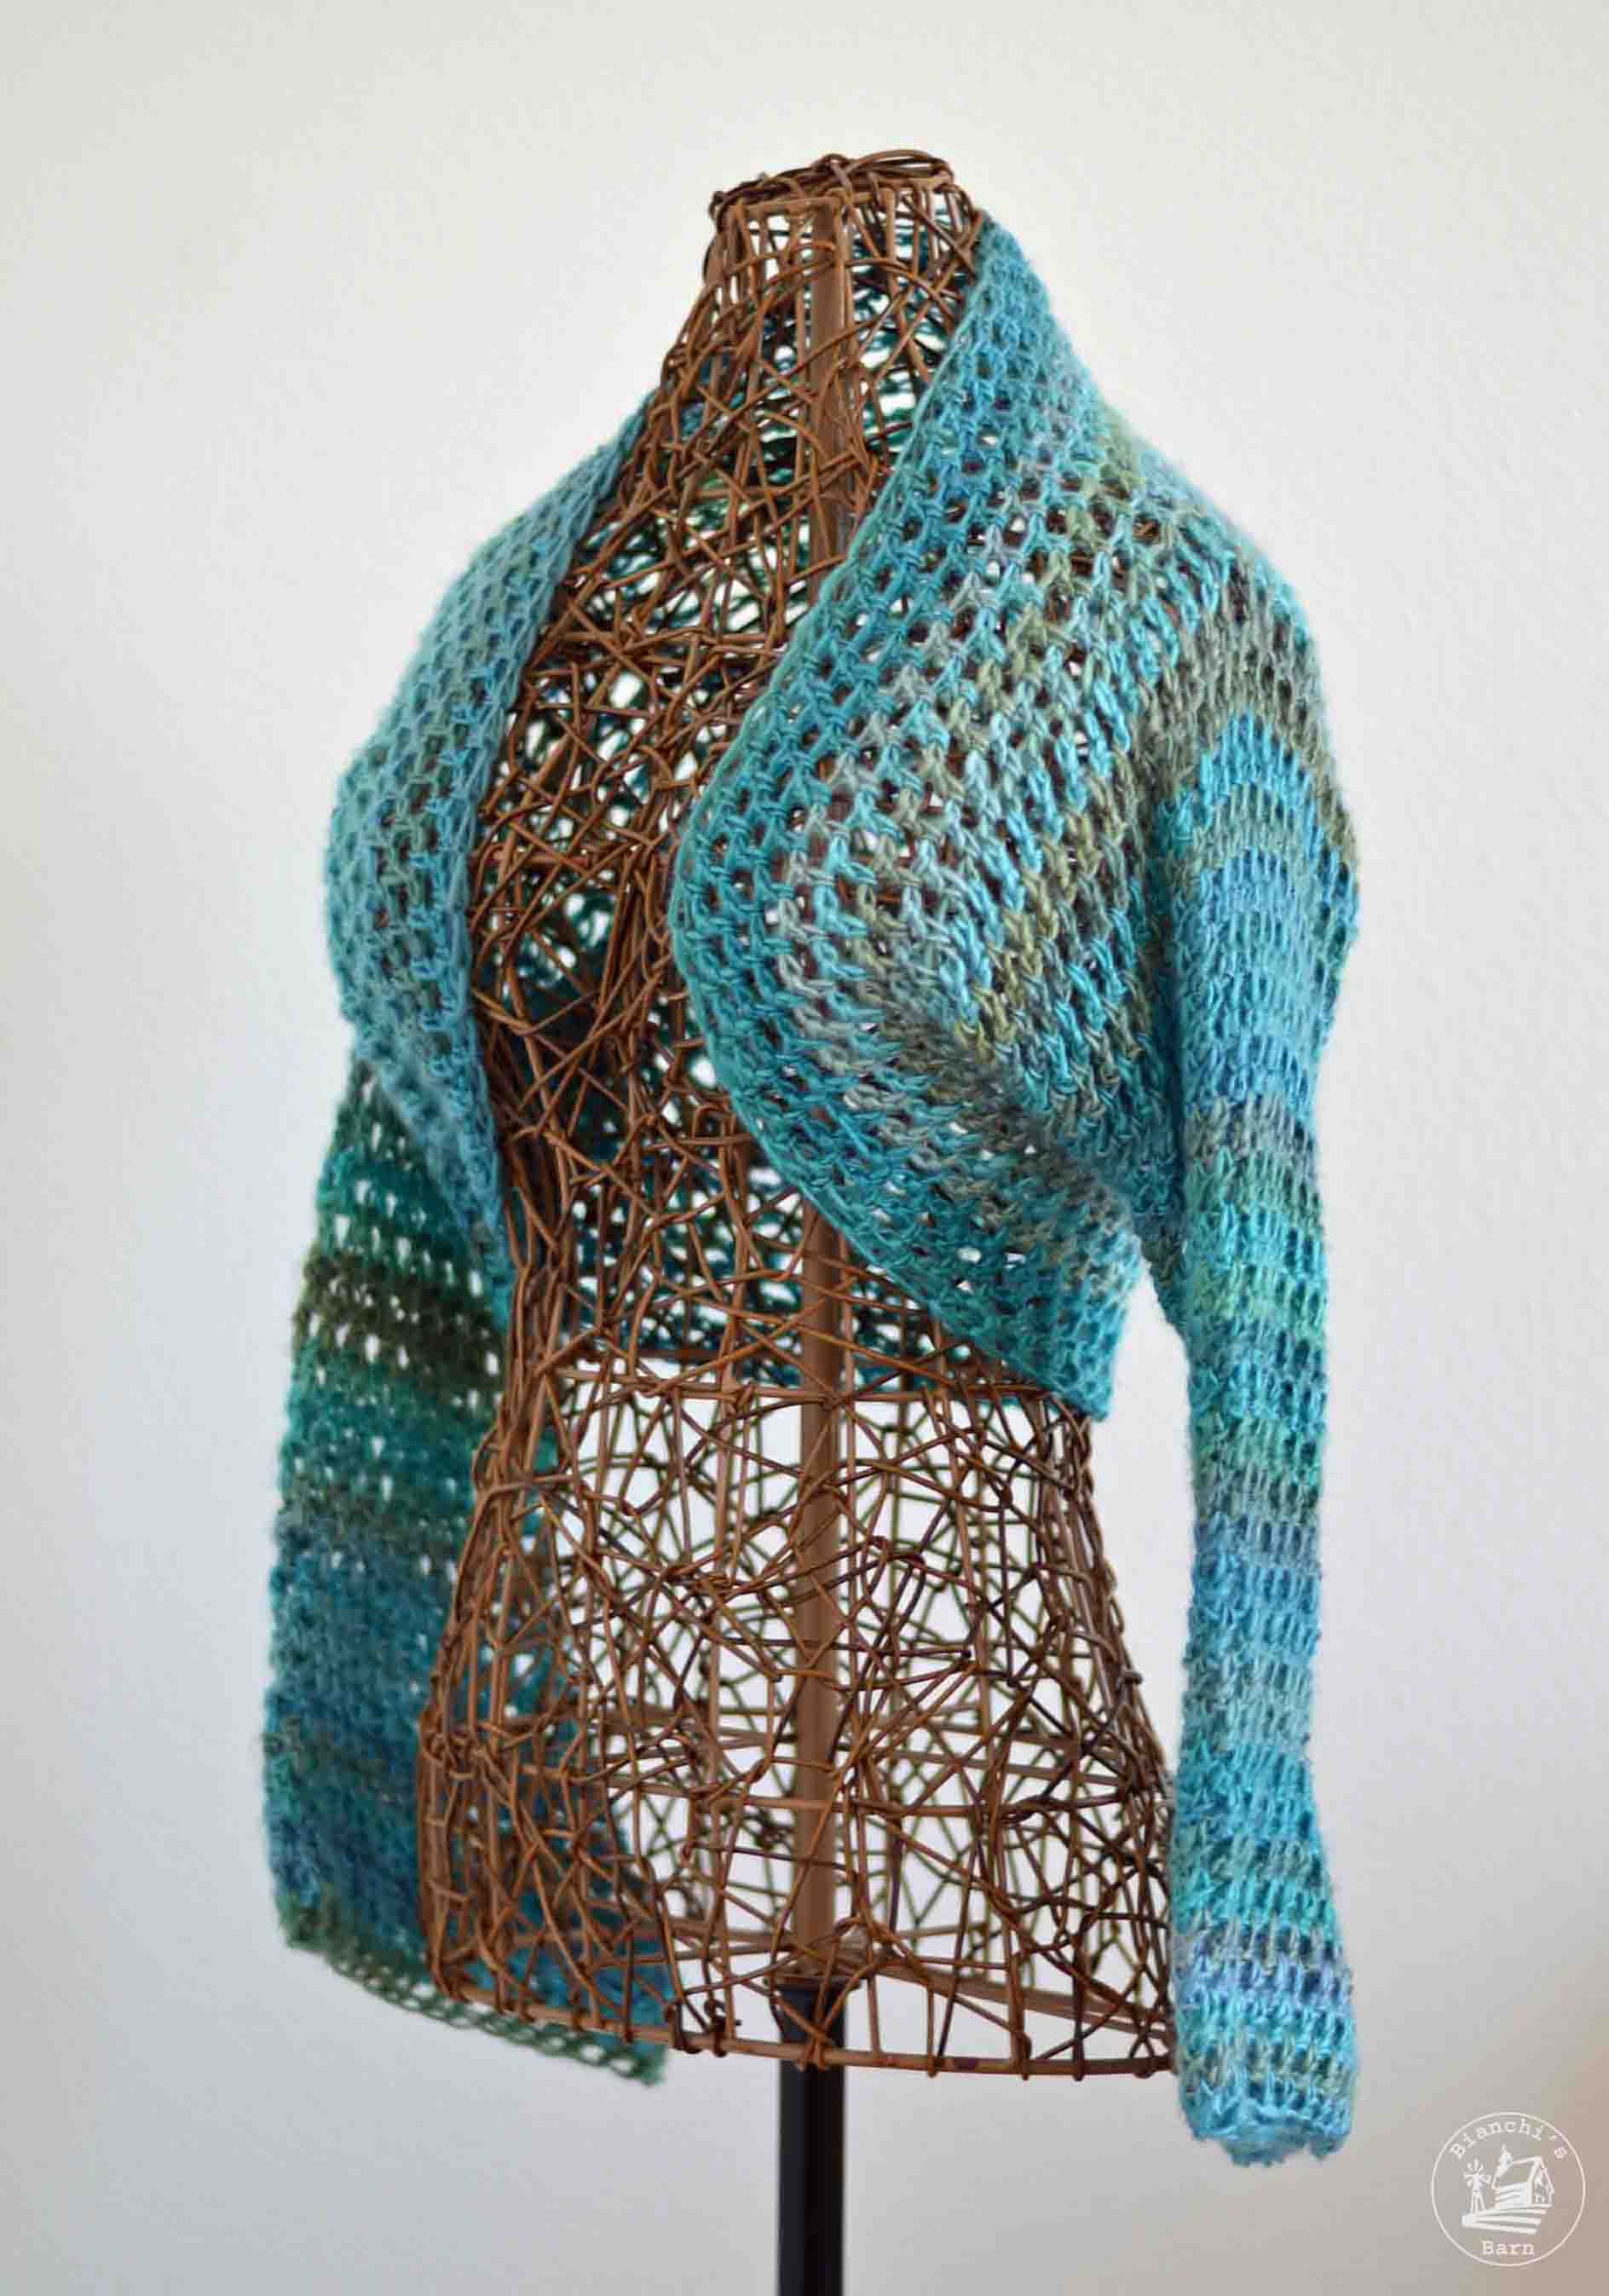 Crochet Shrug Pattern : Lightweight No Seam Shrug Free Crochet Pattern